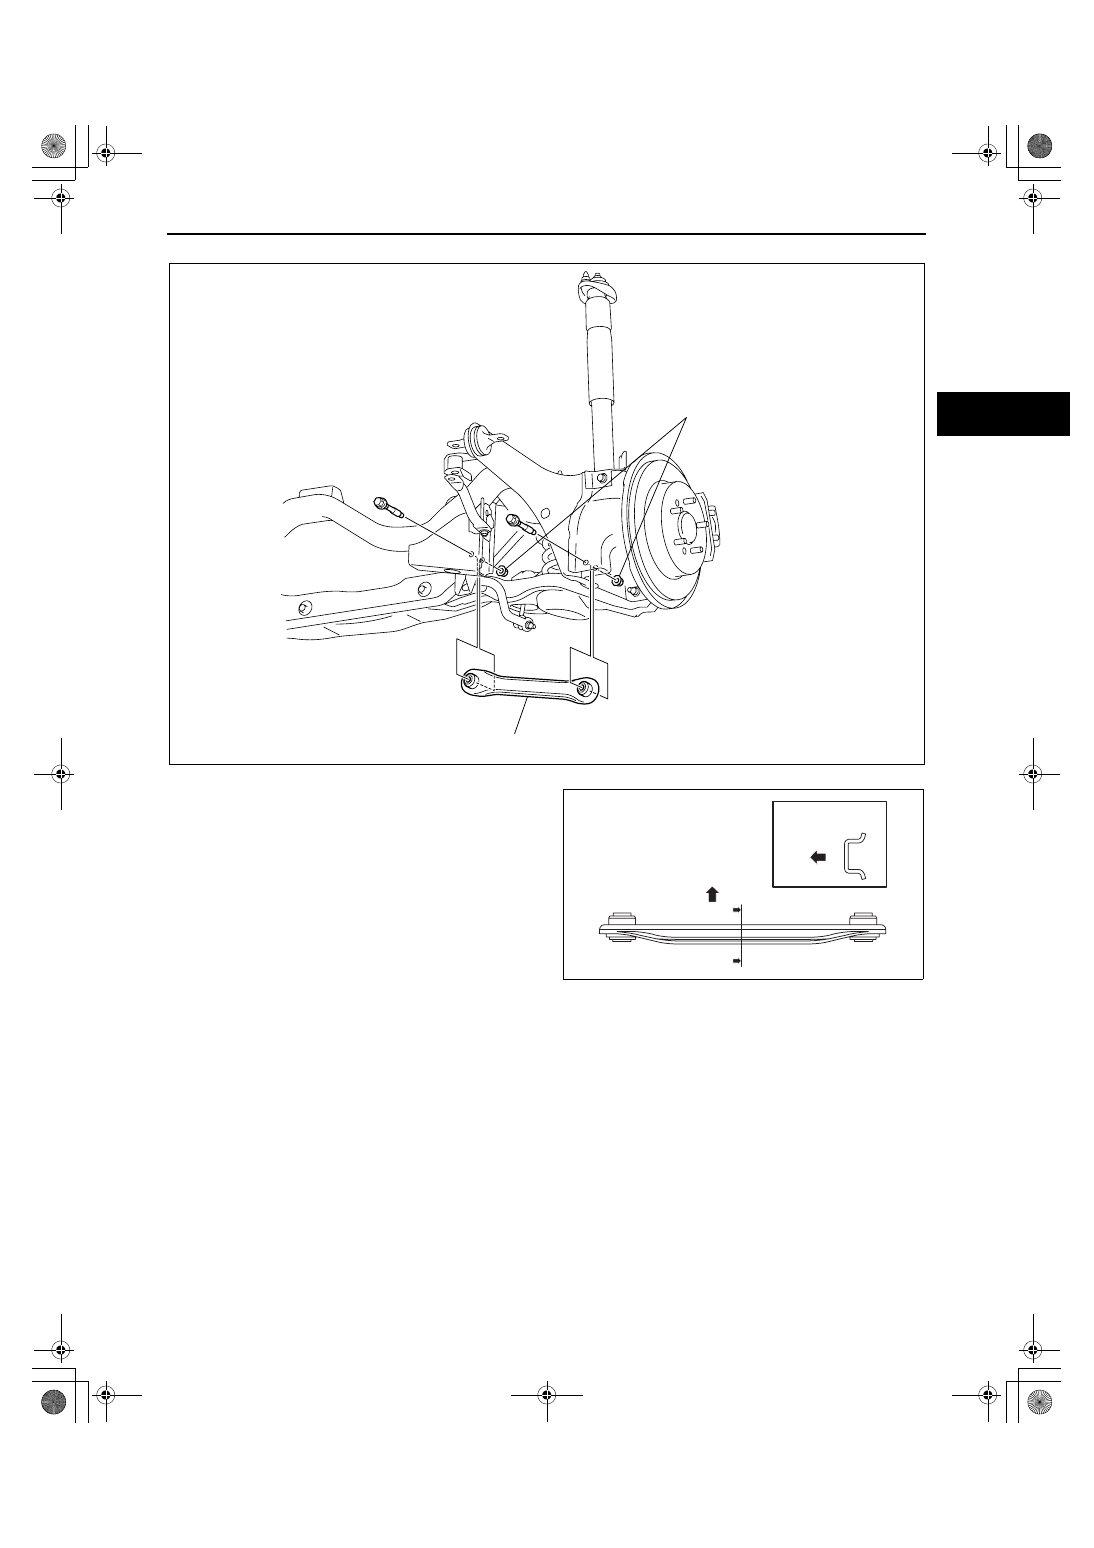 Mazda 3 Service Manual: Rear Stabilizer RemovalInstallation